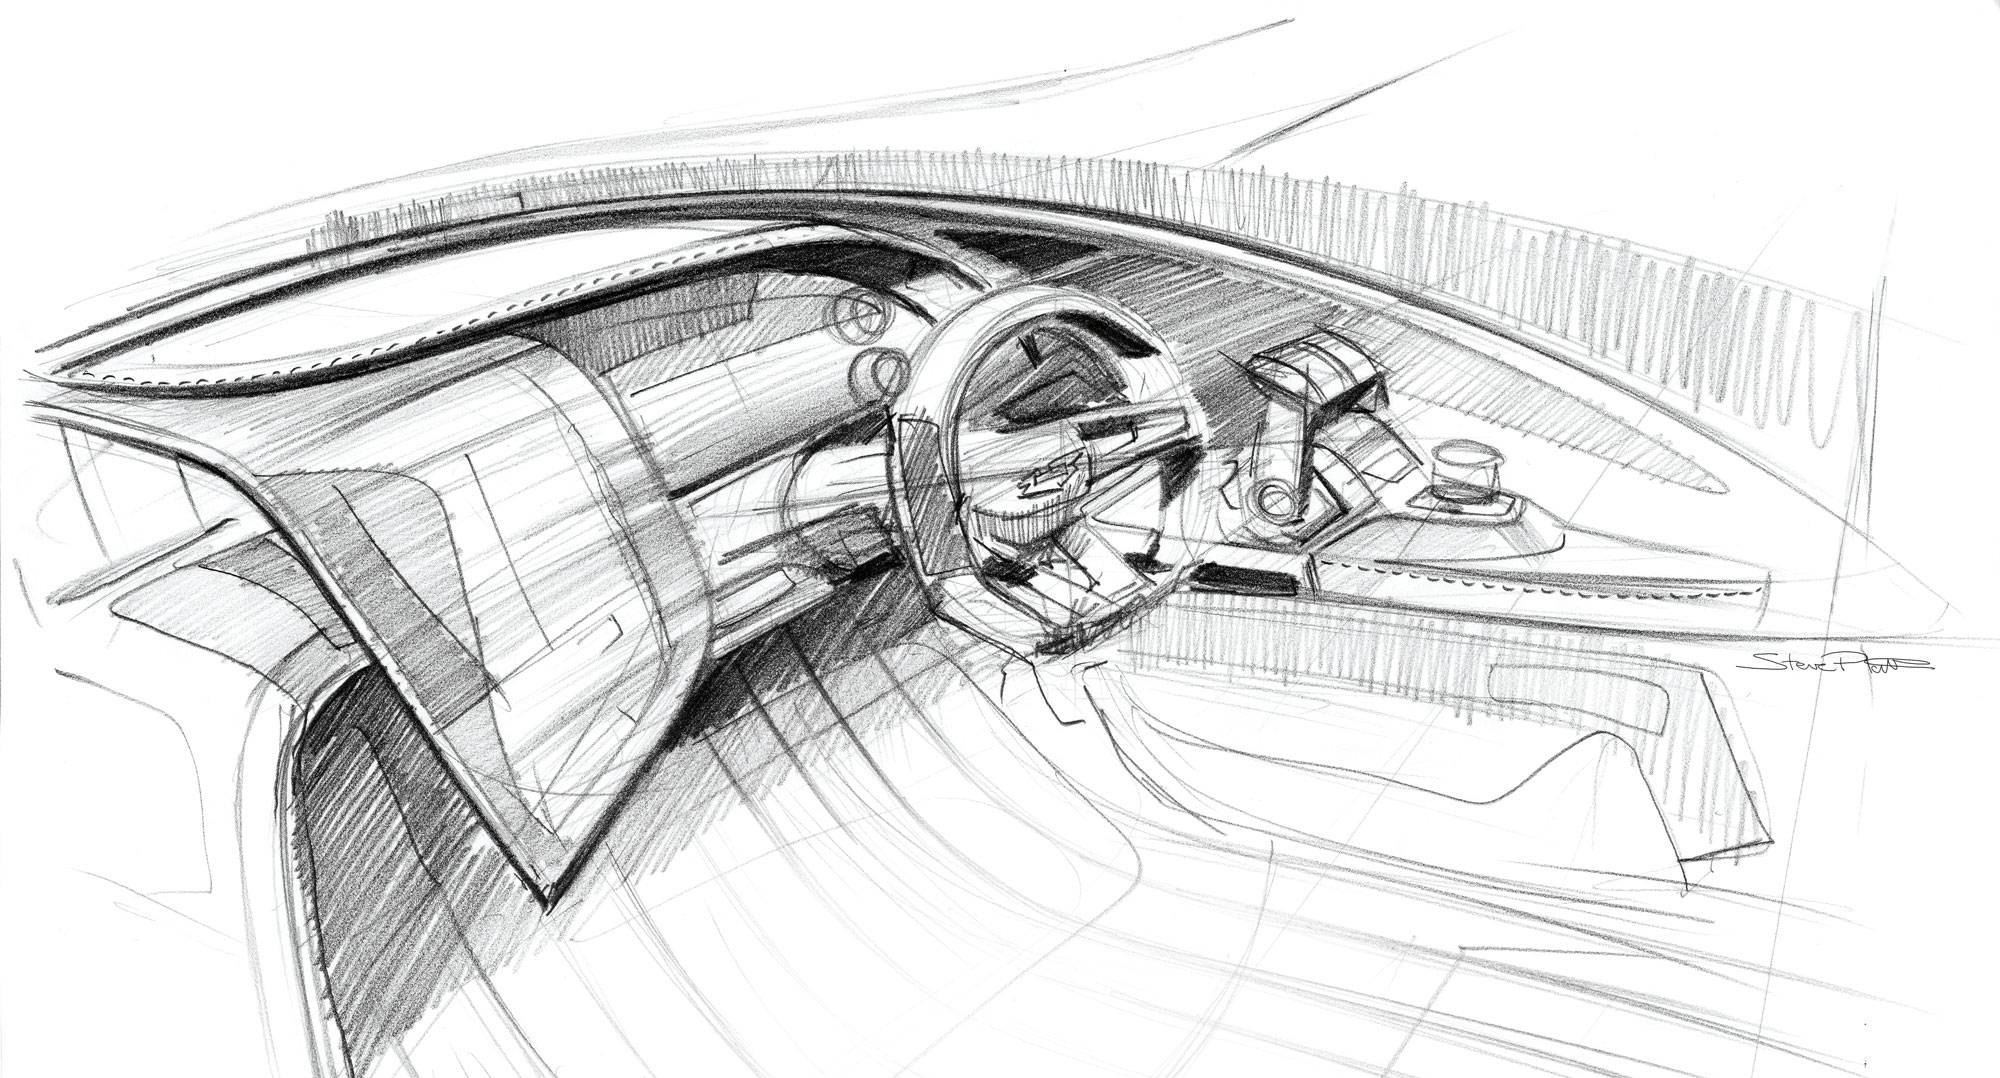 Original sketch of the AM37 cockpit